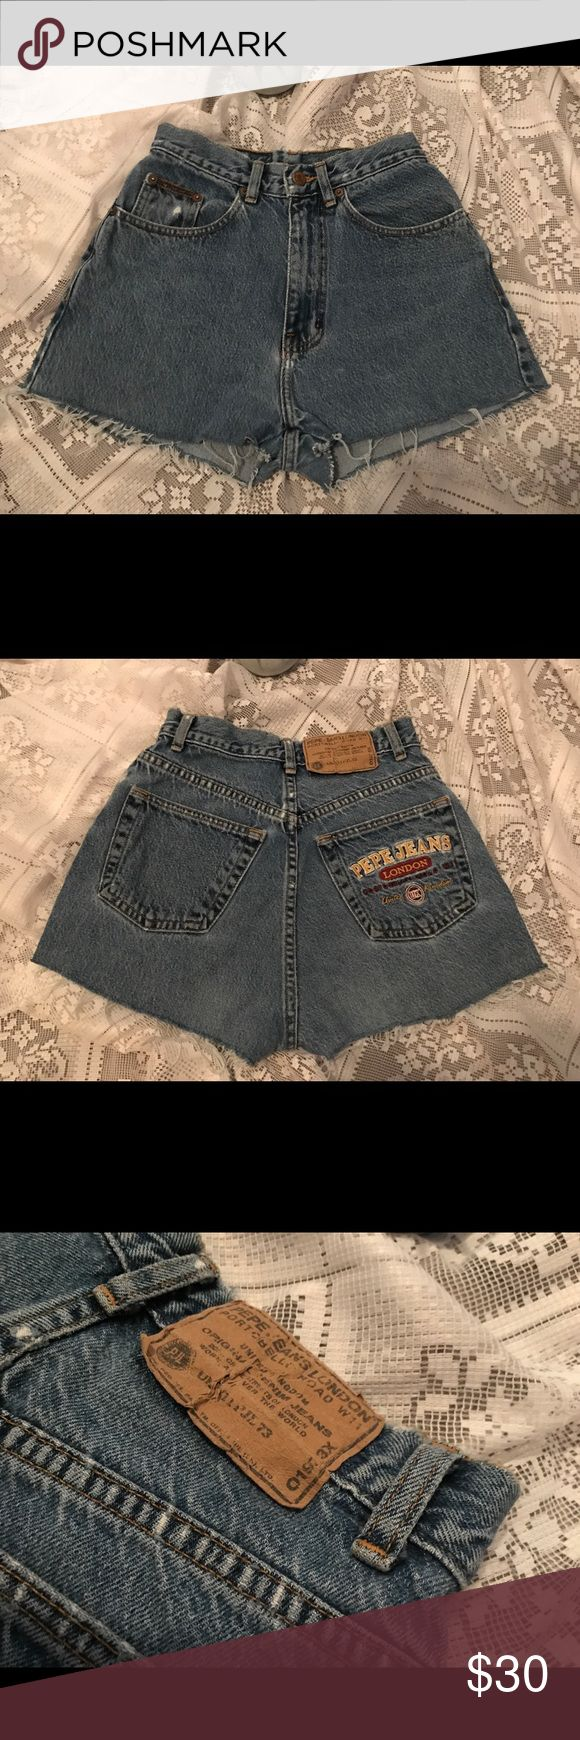 Vintage Distressed Pepe Shorts Vintage distressed Pepe Shorts. Size 26, but could pass for a size 25. Pepe Jeans Shorts Jean Shorts